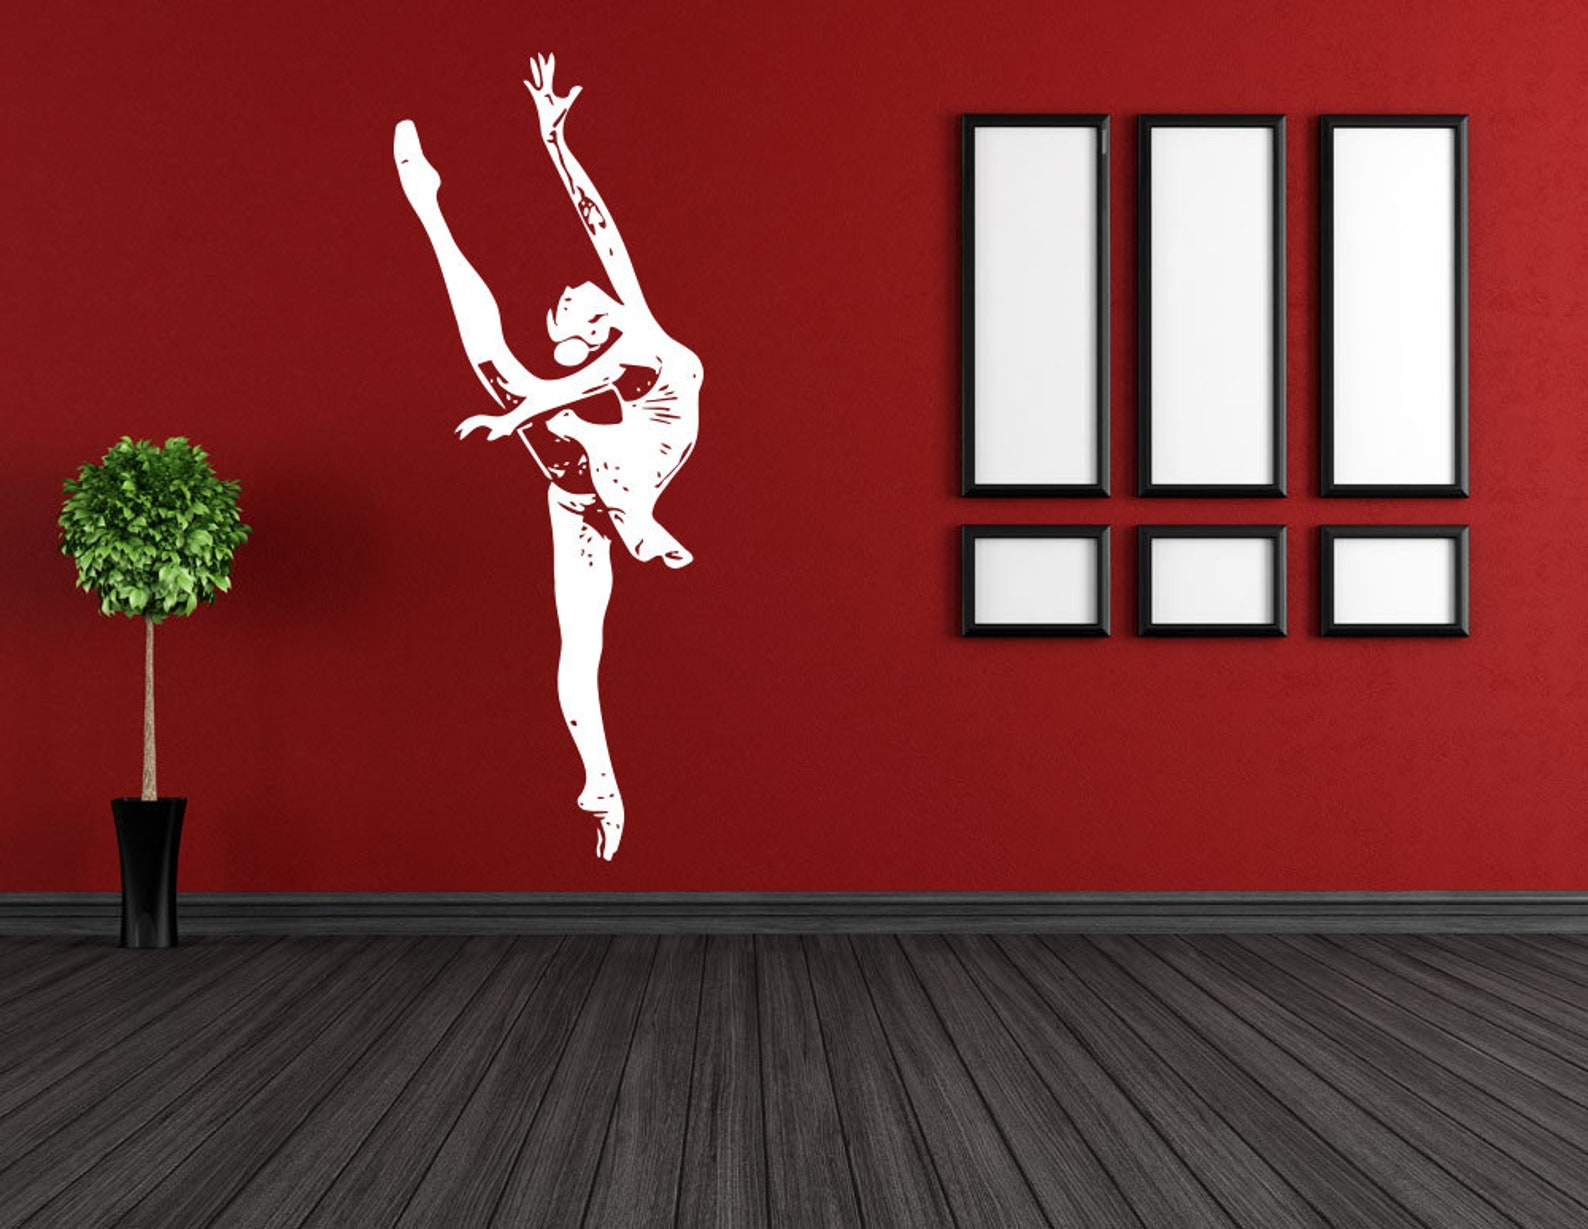 ballet, dance, ballet tutu, pointe shoes, ballet school wall decal window sticker handmade 1585